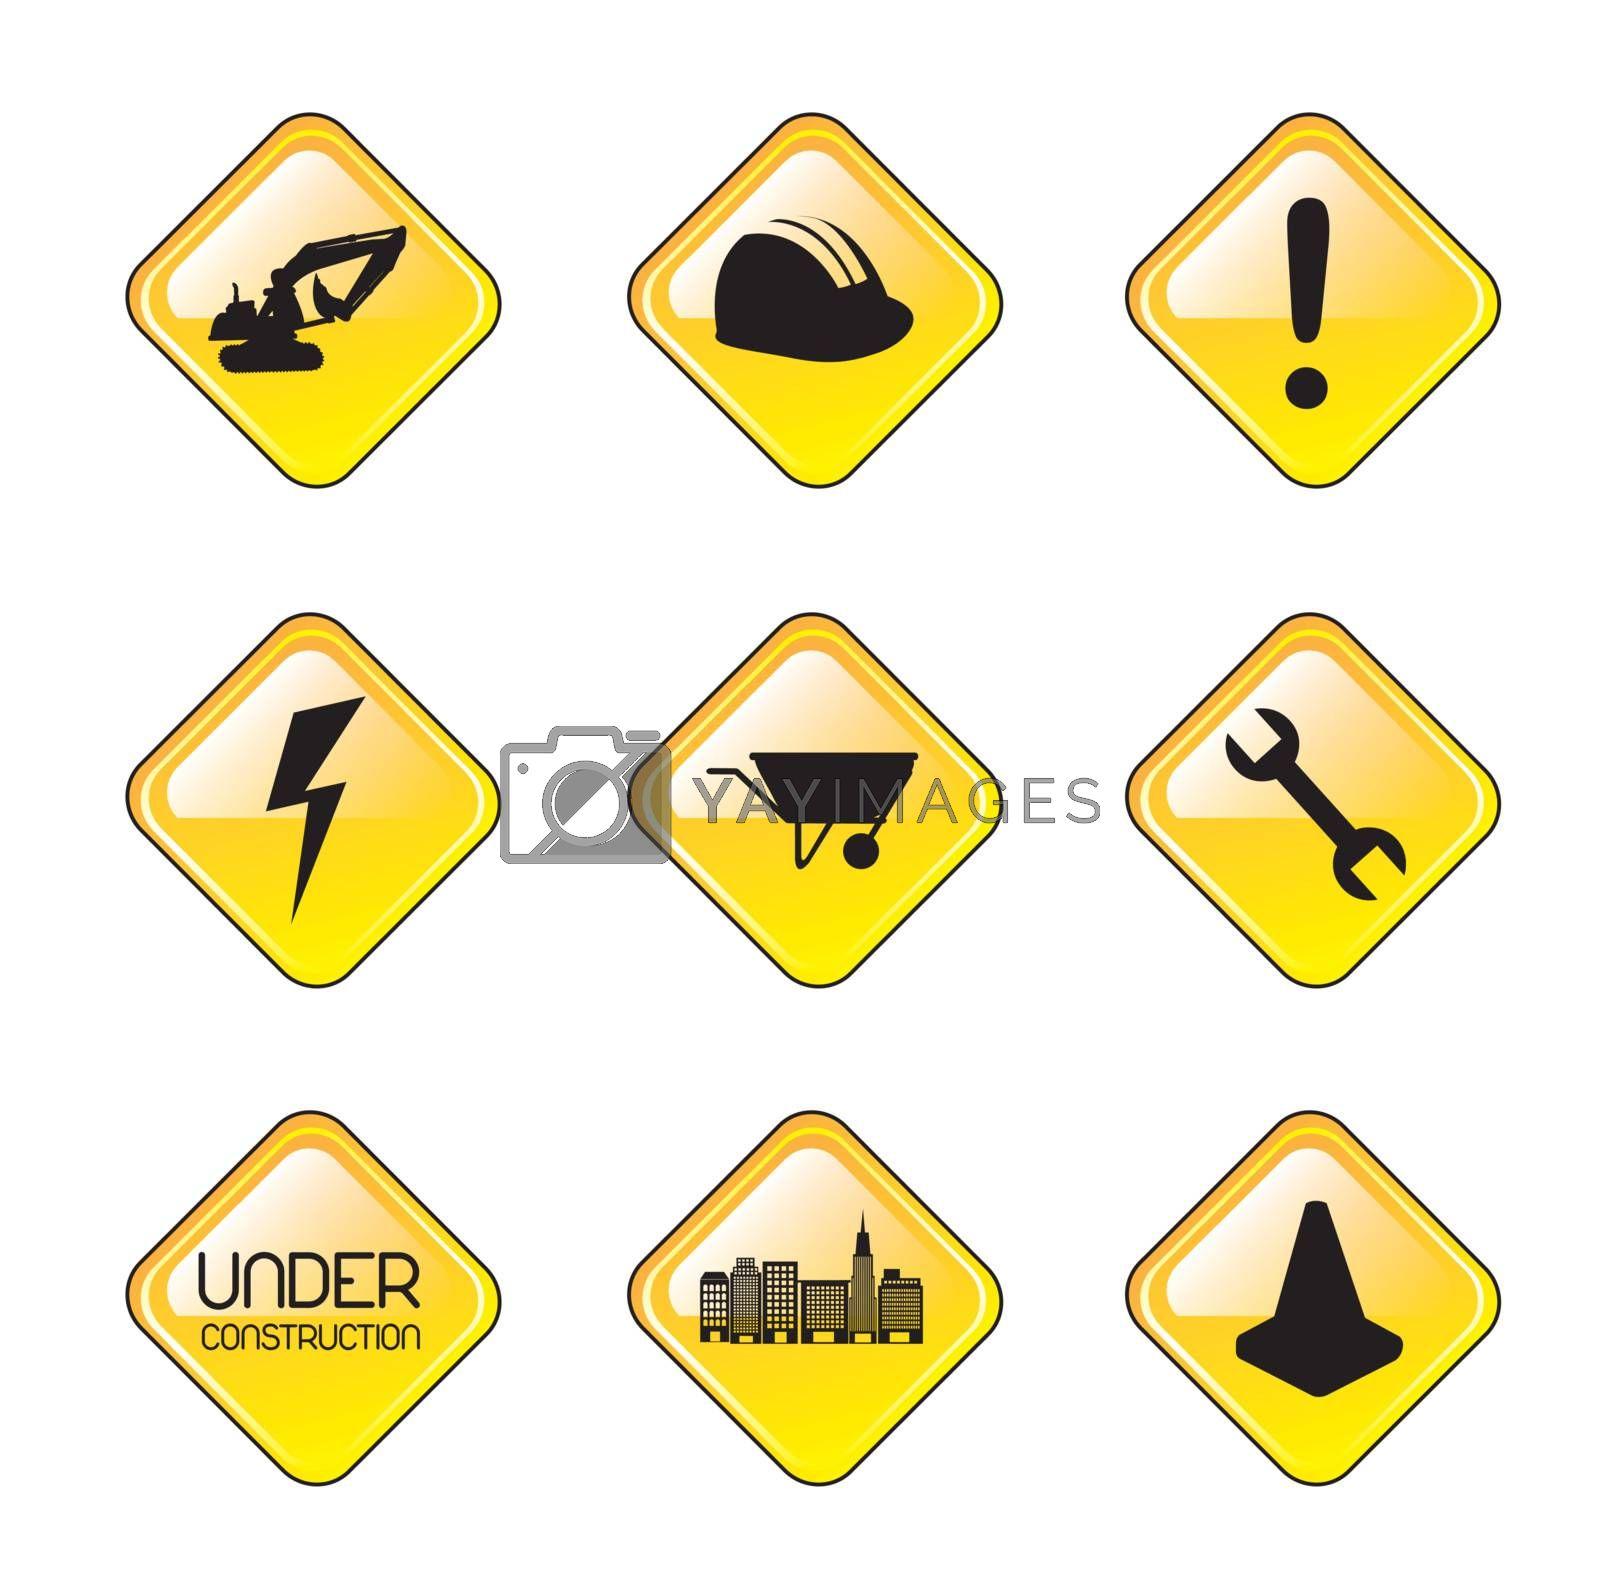 Elements of construction over white background